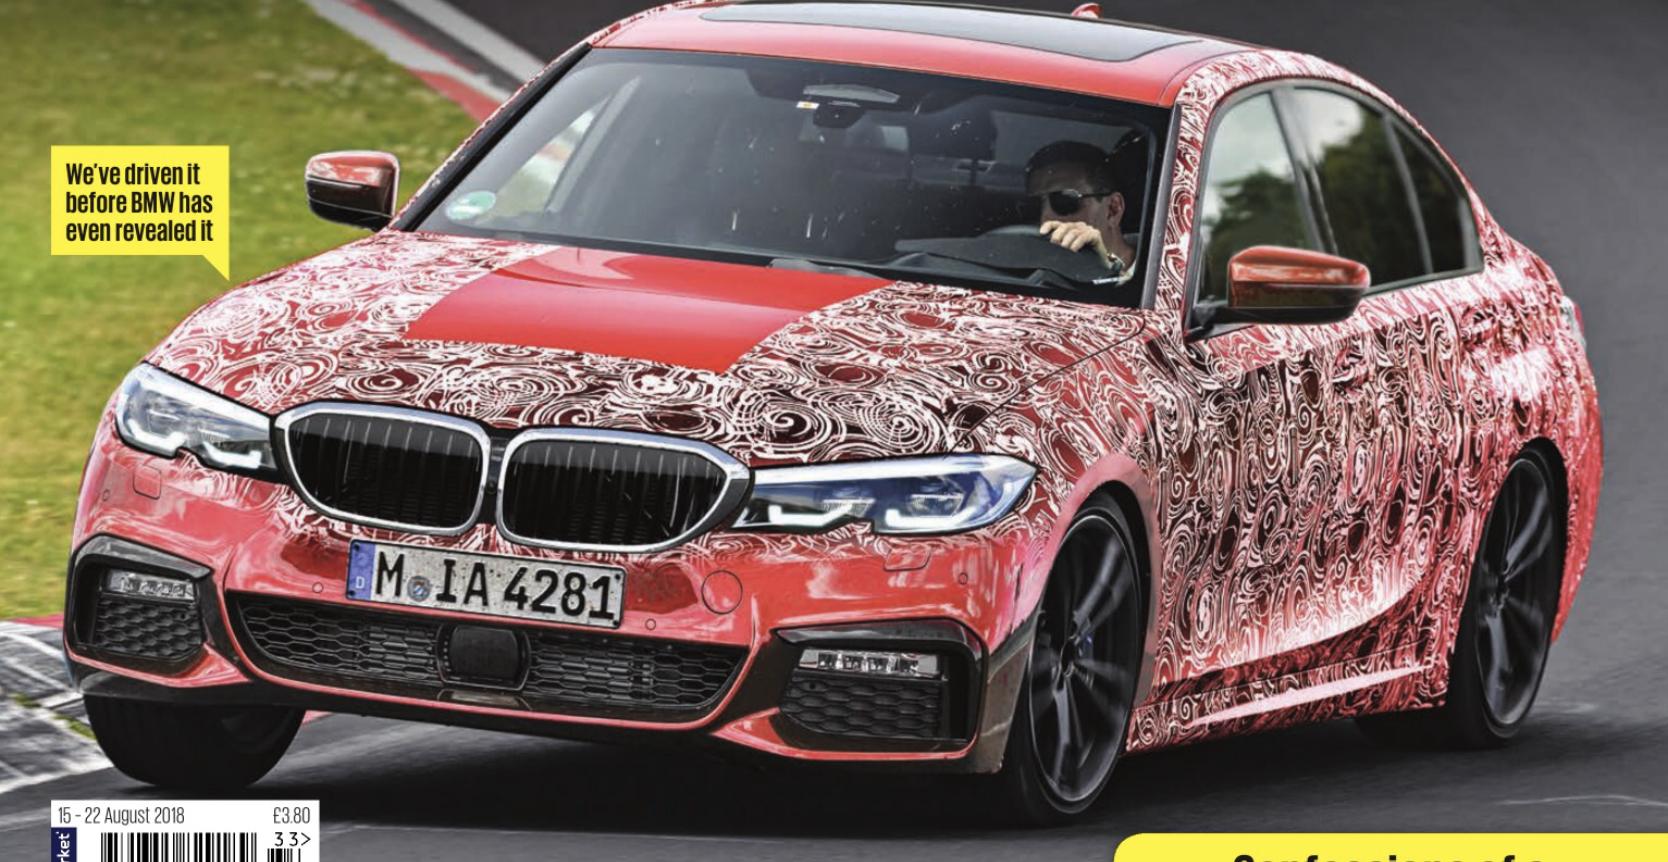 G20 Bmw Forum Bmw News And Bmw Blog Bimmerpost